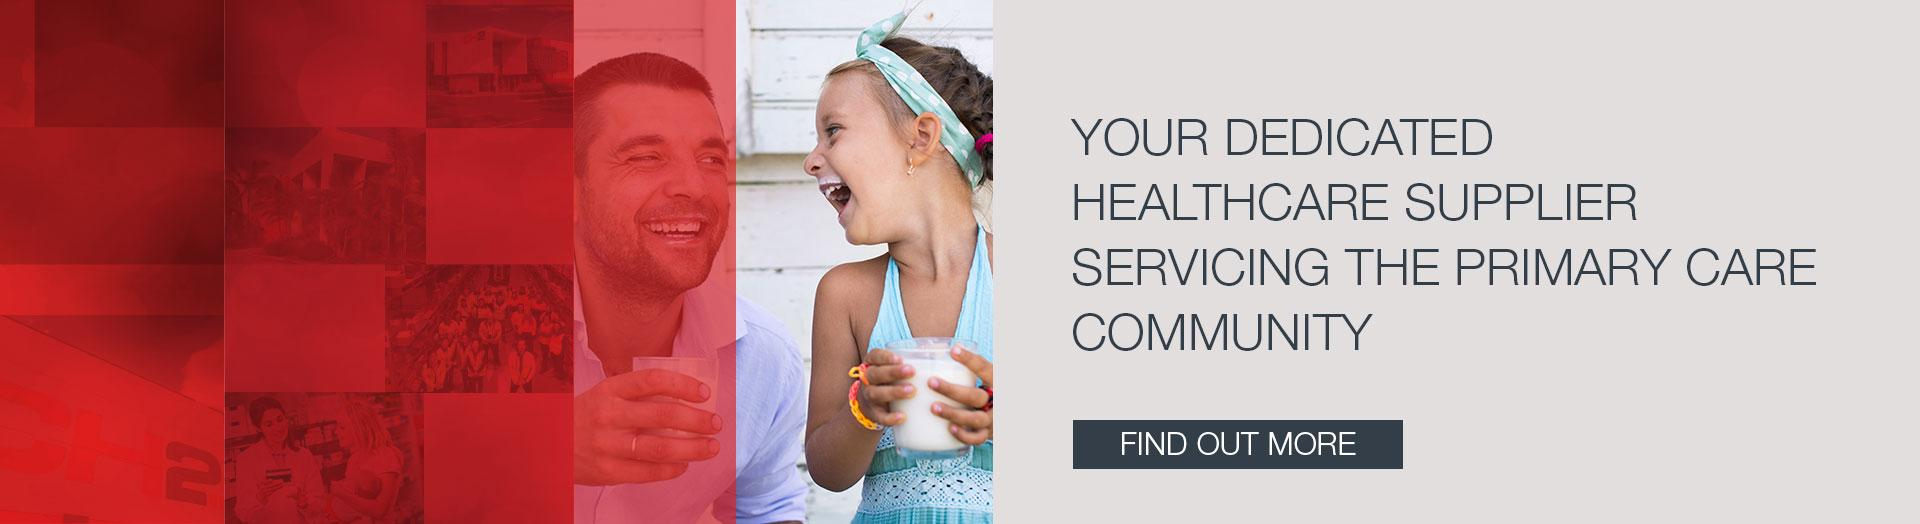 Your Dedicated Healthcare  Supplier Servicing The Primary Care Community